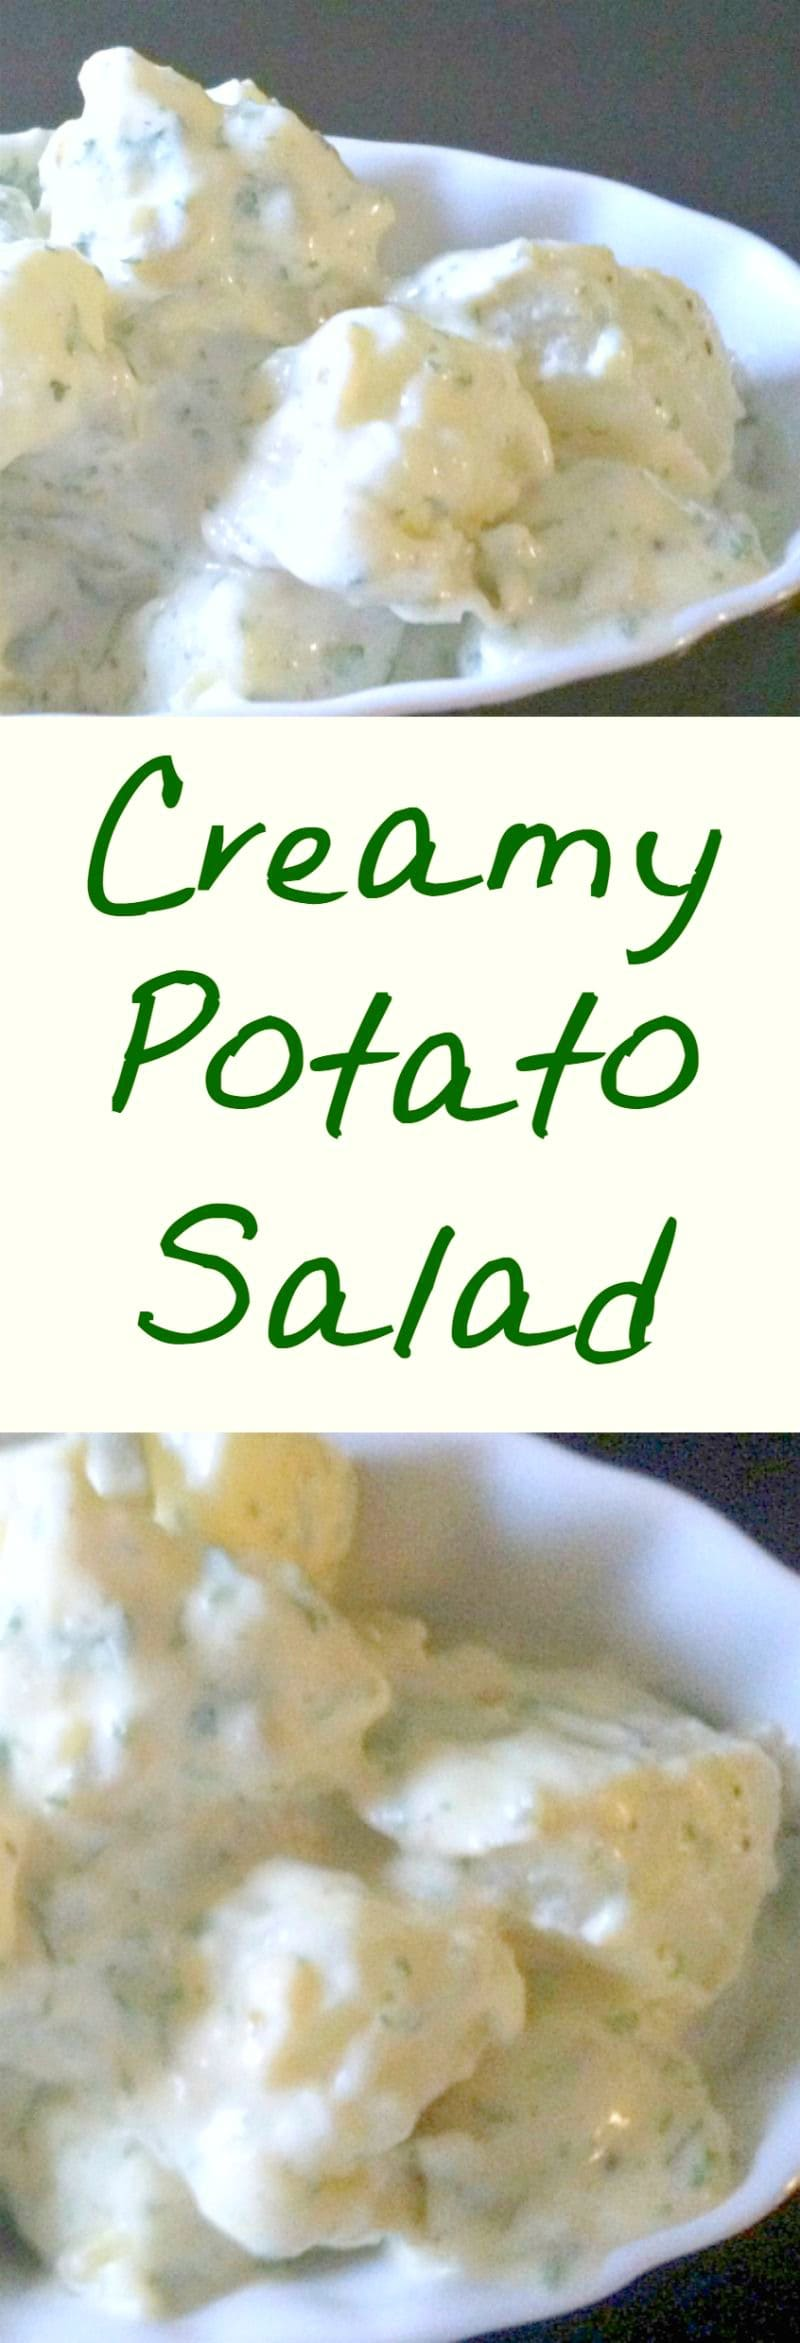 Creamy Egg and Potato Salad is always so popular. Sweet and tangy, it makes for a perfect pairing with your meals or party food! | Lovefoodies.com